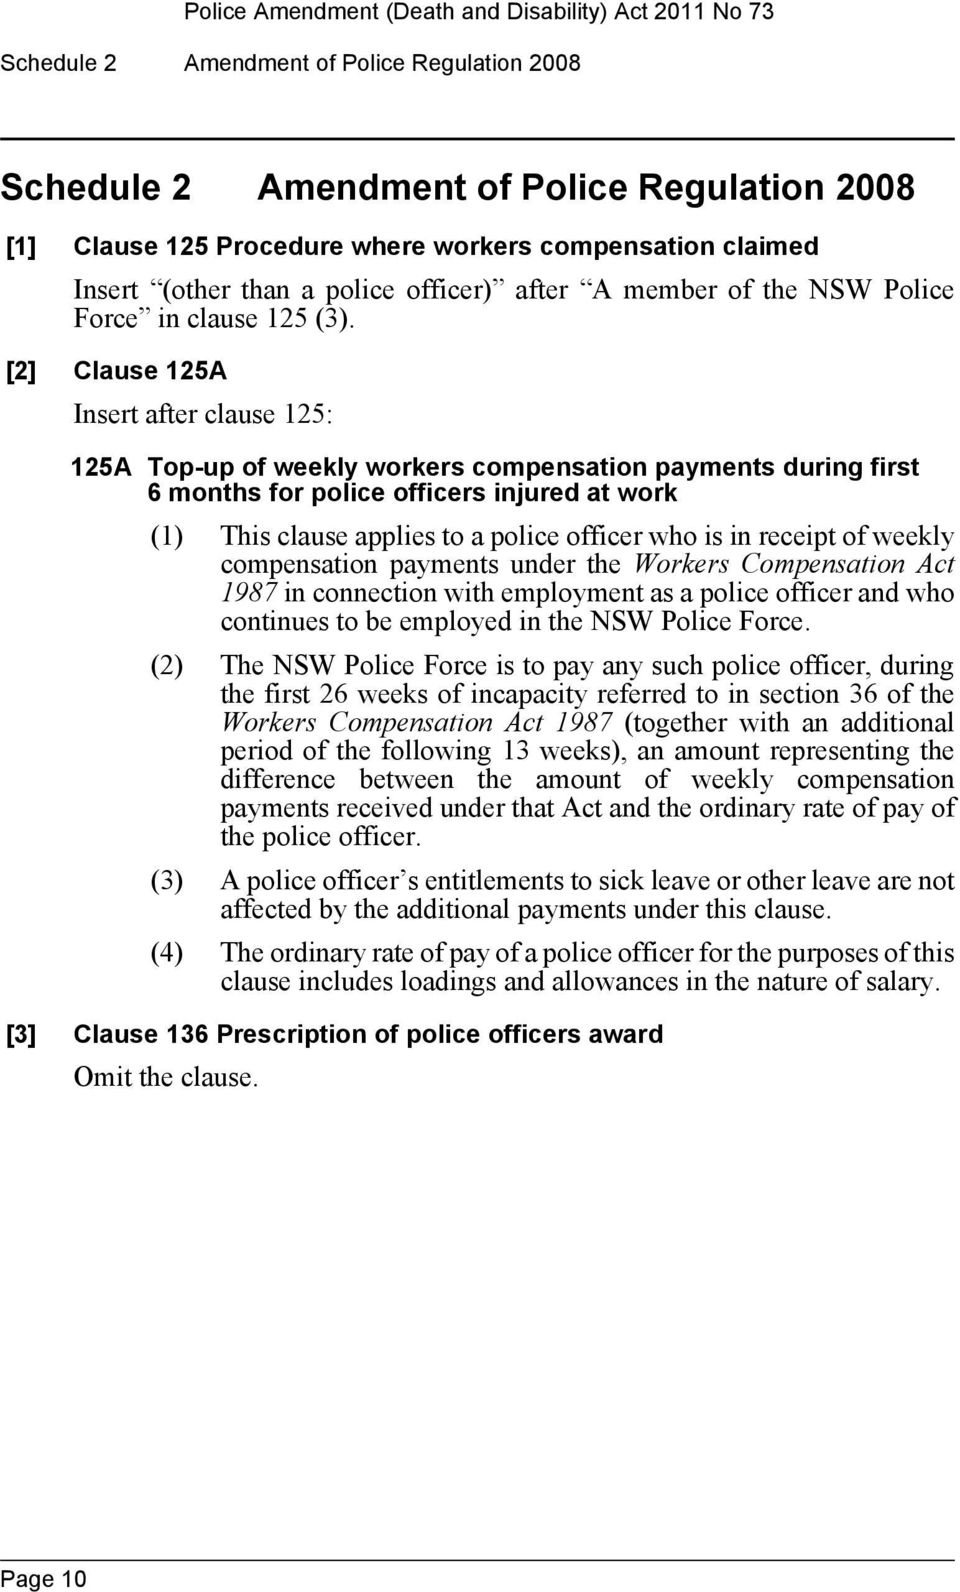 [2] Clause 125A Insert after clause 125: 125A Top-up of weekly workers compensation payments during first 6 months for police officers injured at work (1) This clause applies to a police officer who